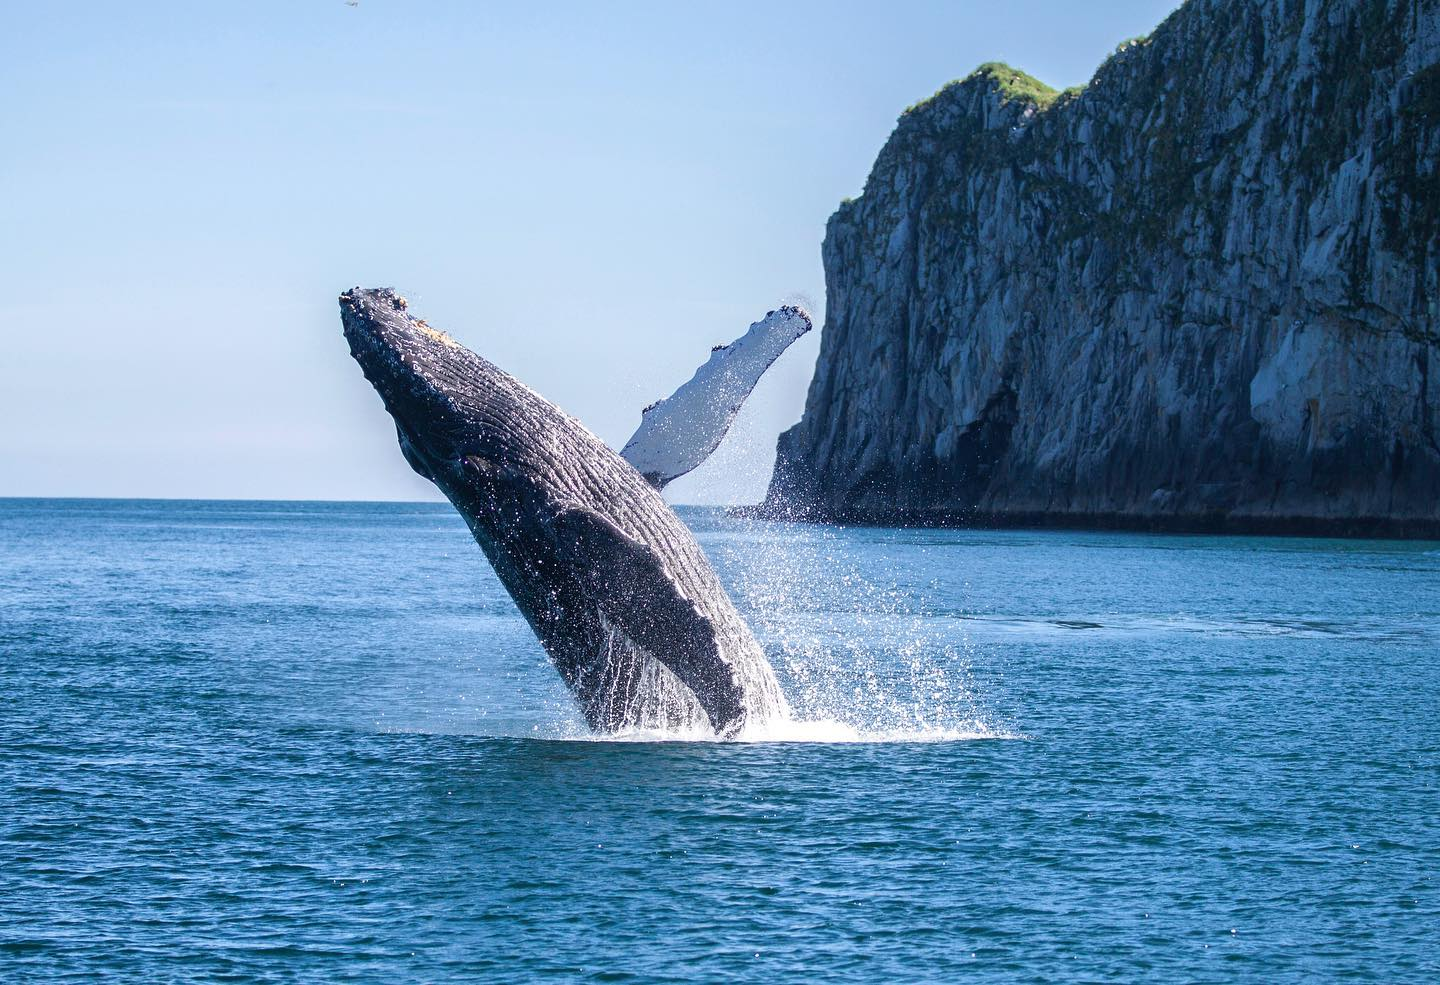 Spot The Humpback Whale On Its Annual Migration Through Alaska This Fall